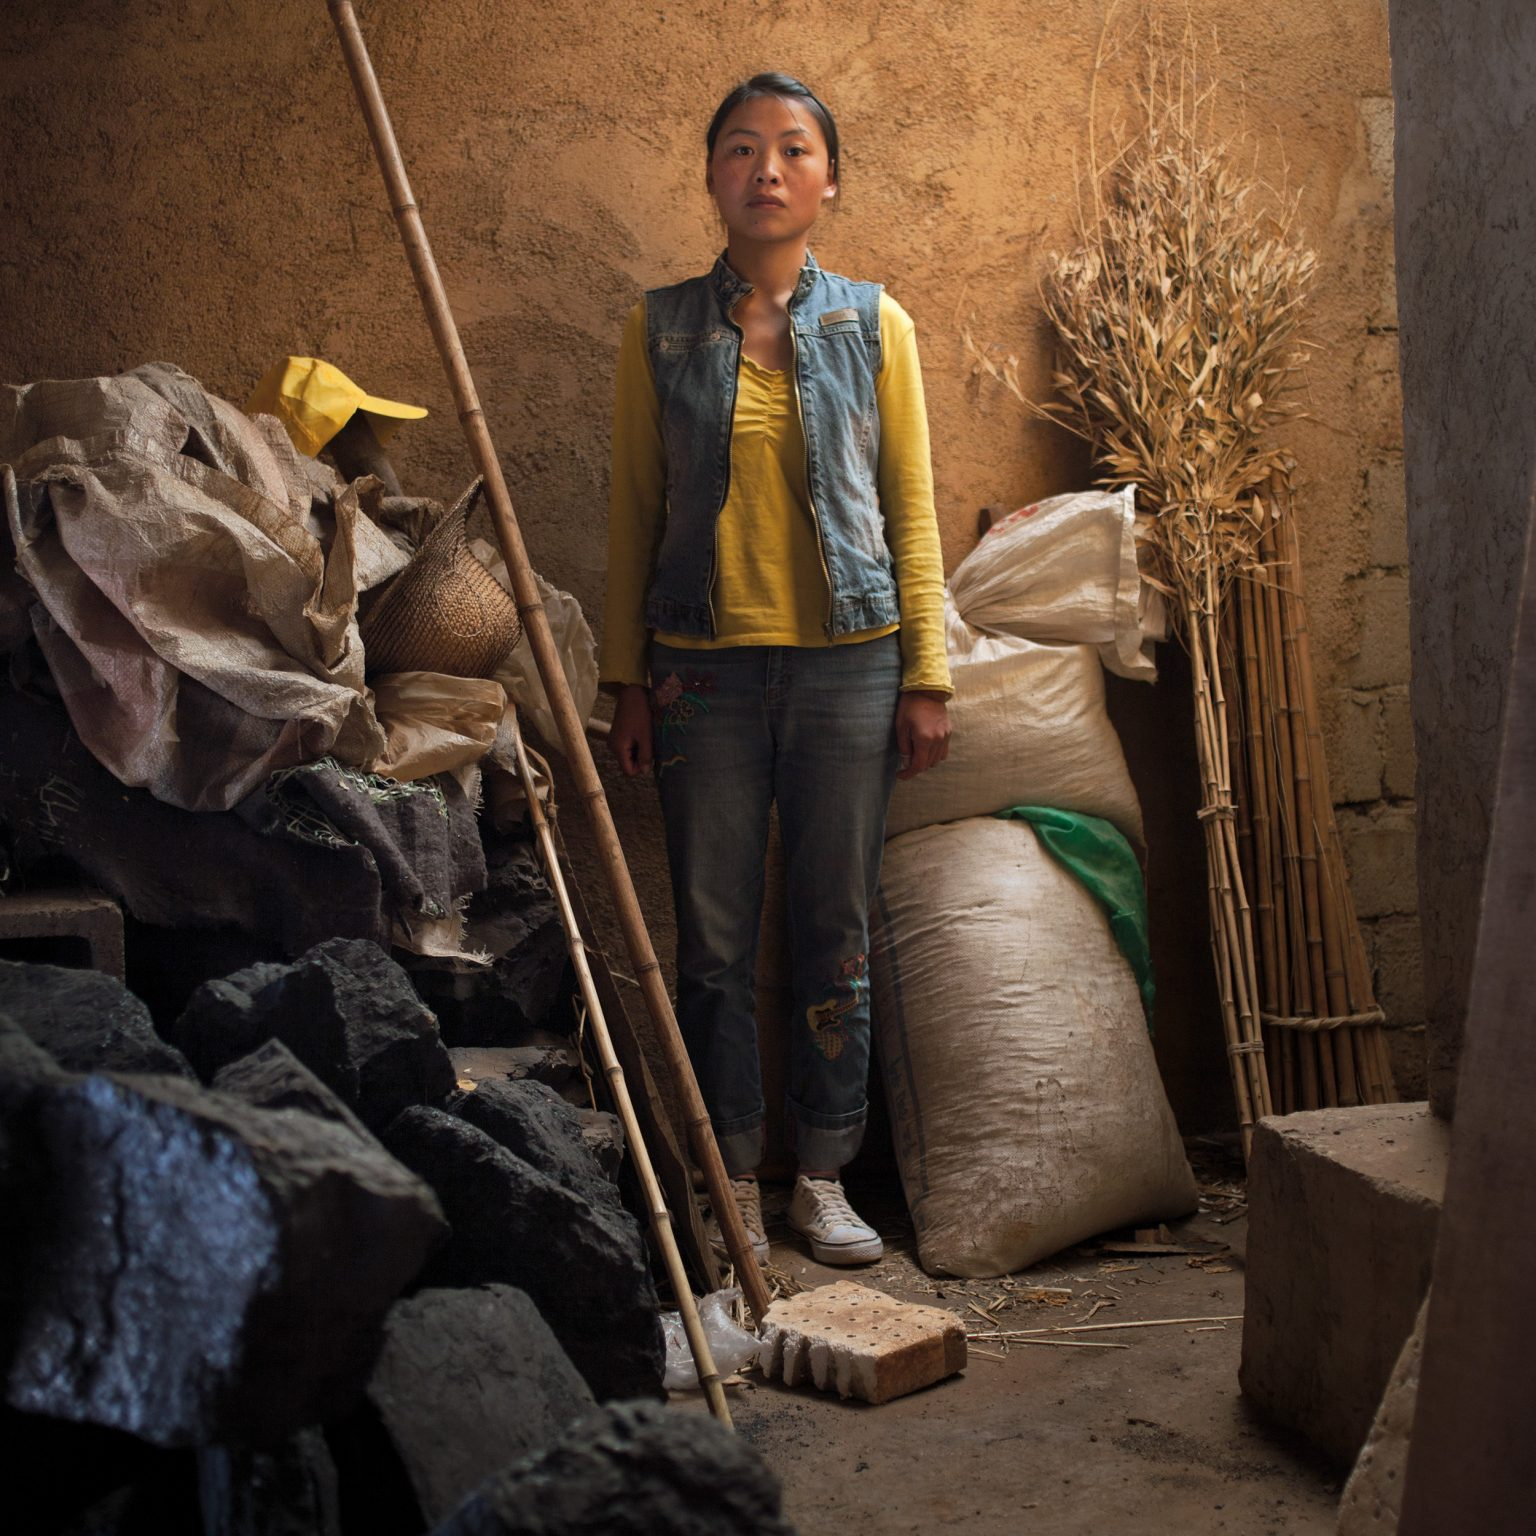 Xundian, China. Wang Zhi Hui, a tobacco grower, in her family barn. Xundian is one of poorest rural areas in Yunnan Province. Land is hilly and the soil infertile. Some 180 people reside in this village and almost all of them grow tobacco. The tobacco industry has been largely responsible for the economic growth of the province but it has failed to spread the wealth to the rural area where around 87 percent of the province's population live. Out of a total population of 41 million, about 6 million people in the province still live below the national poverty level at an annual income below USD 70 . A tobacco grower in Yunnan earns an average of USD 148 per Mu (1 Mu = 666 Square meters) compared with a vegetable farmer who earns an average of USD 595 per Mu. In China, about 1 million hectares of land are utilized to grow tobacco, 40% of which are in Yunnan.